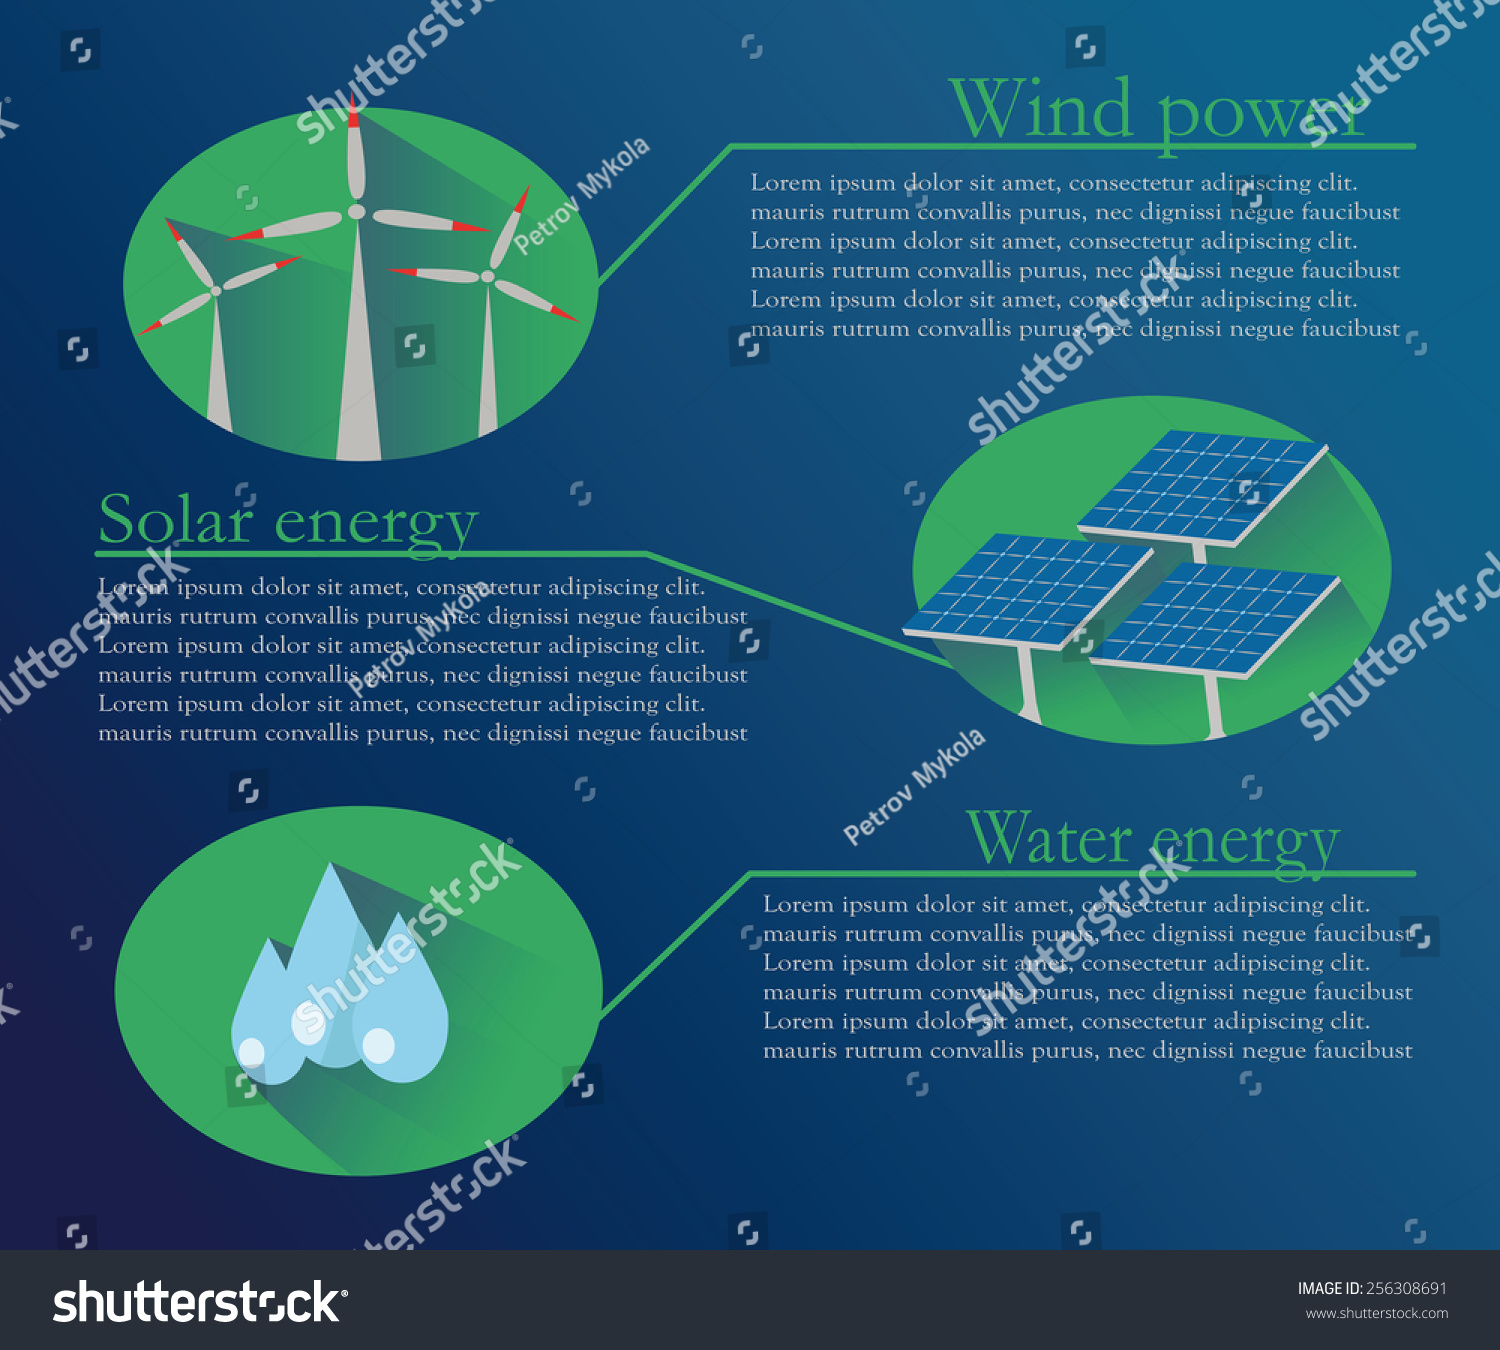 Worksheet 3 Types Of Alternative Energy description three types alternative energy such stock vector of the as wind power solar and